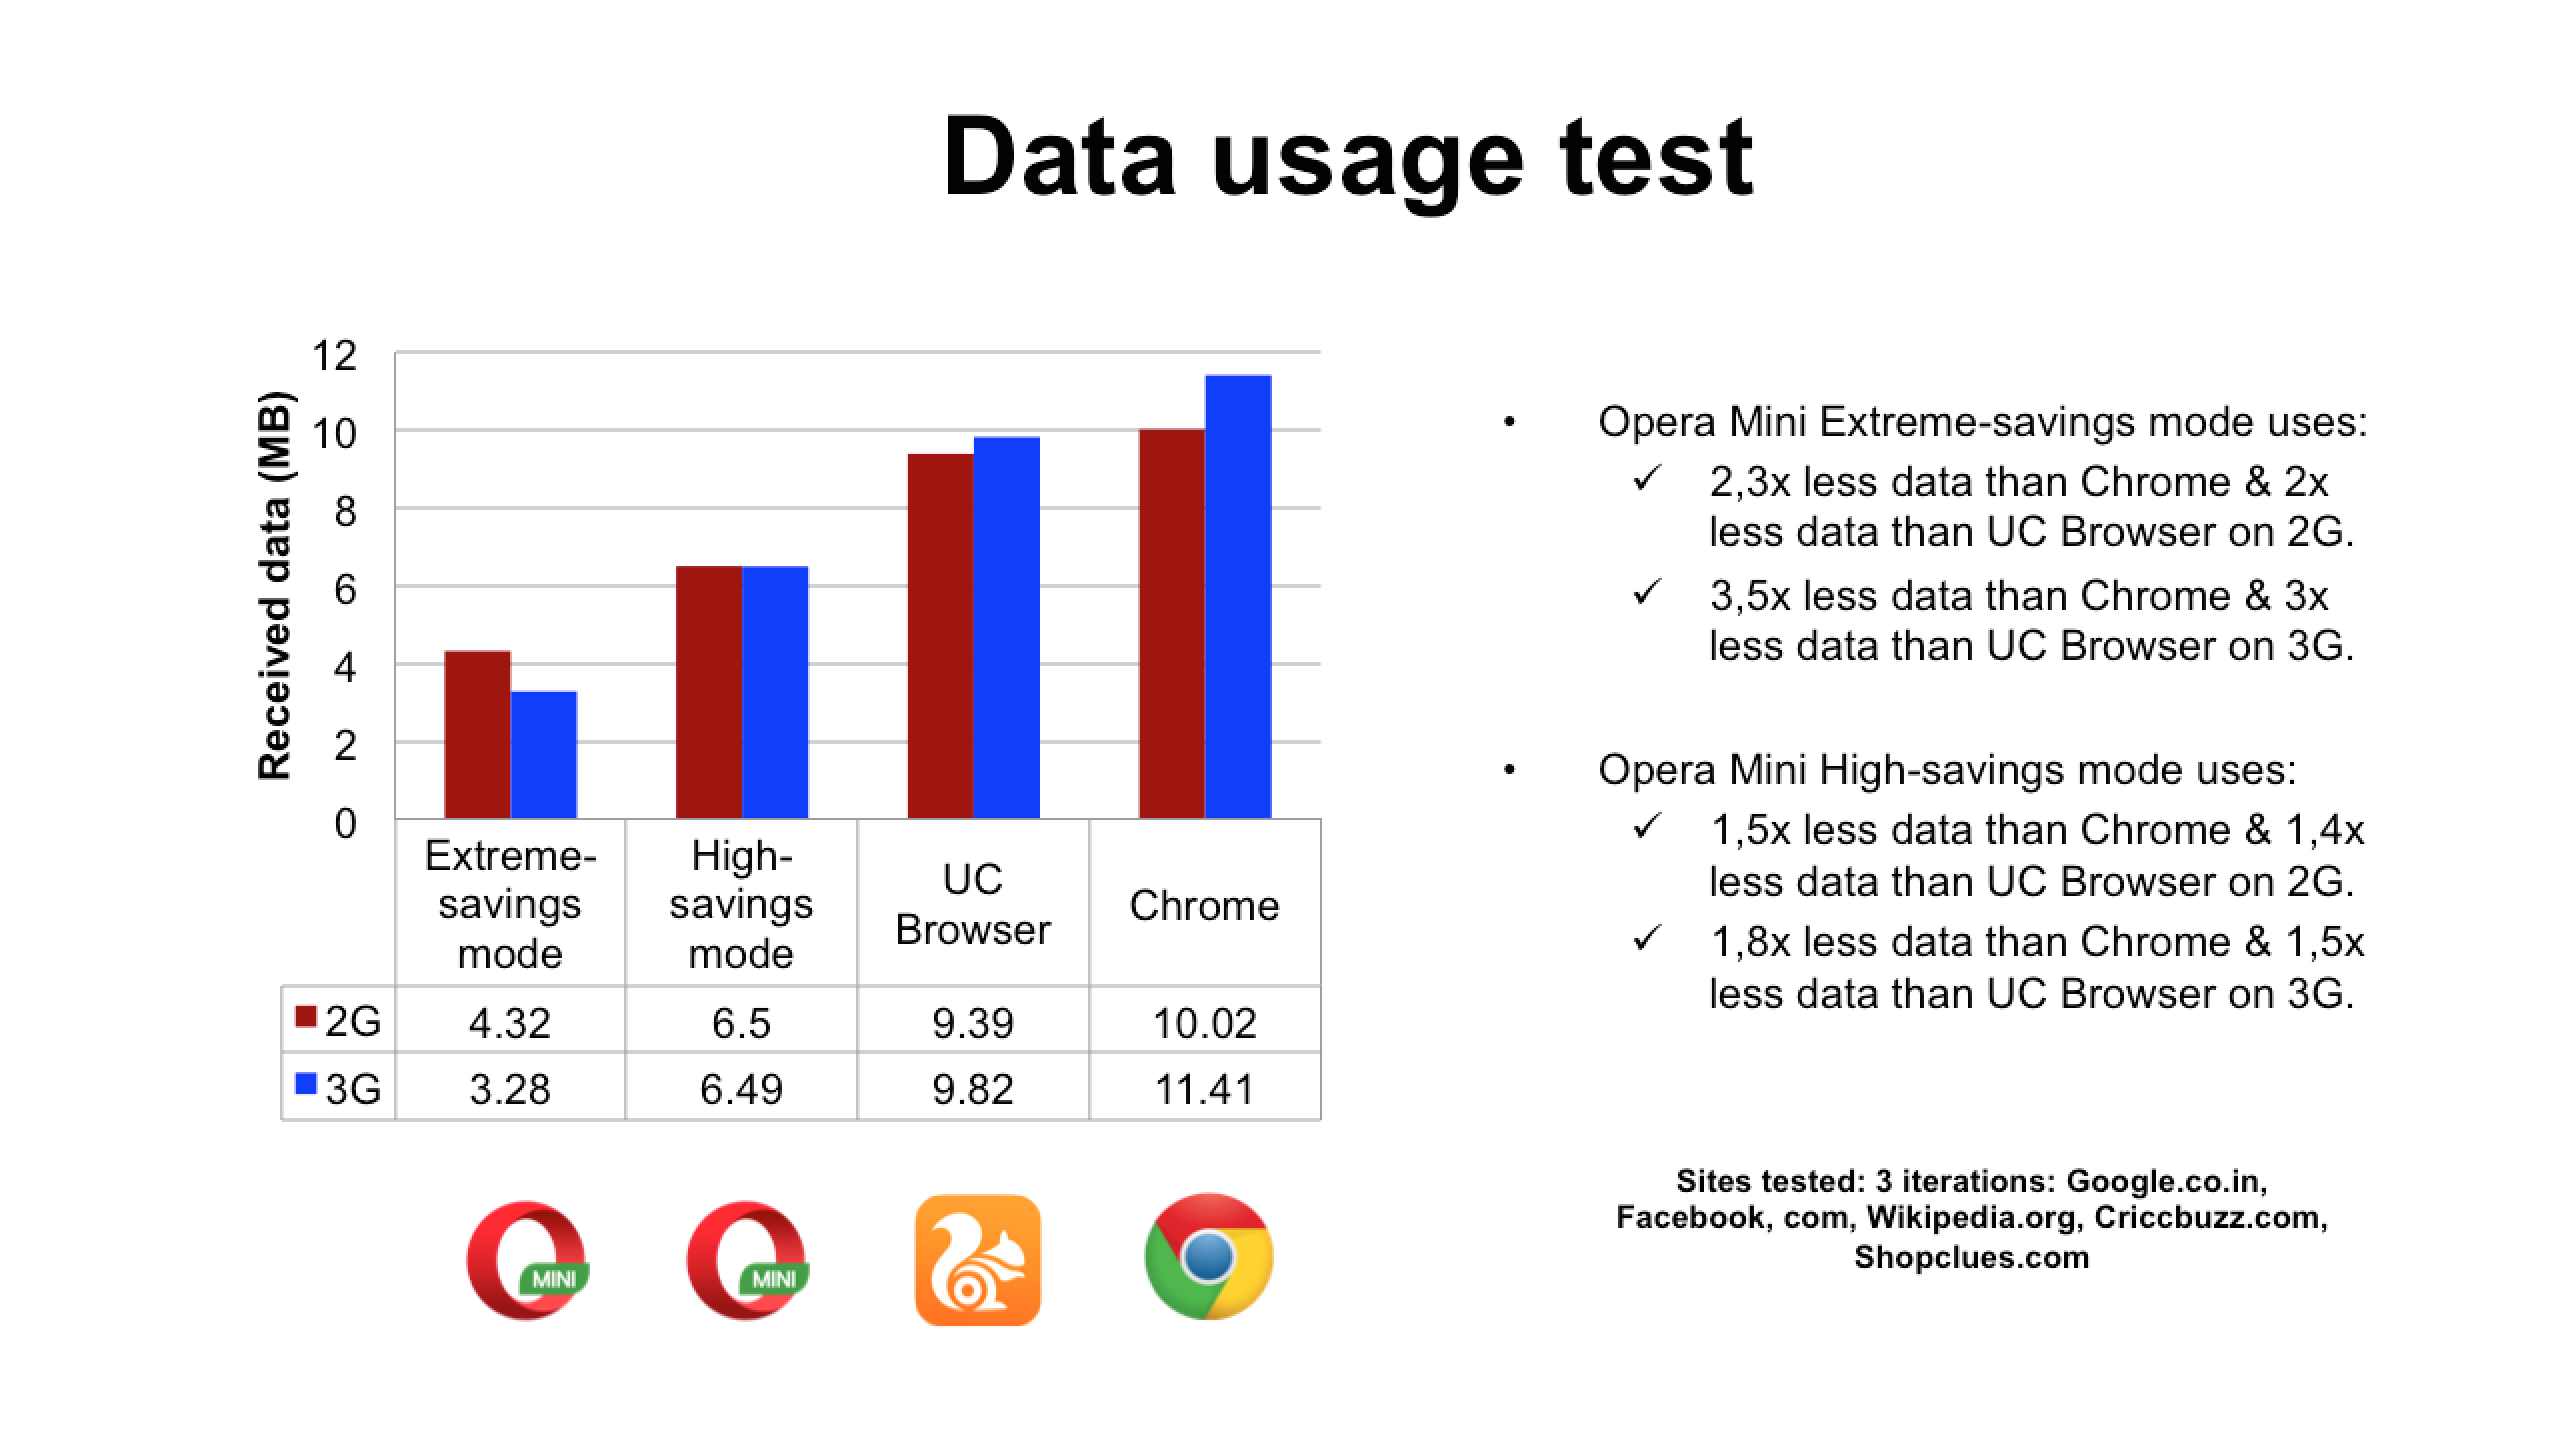 Opera Mini is not only the fastest browser but saves the maximum data